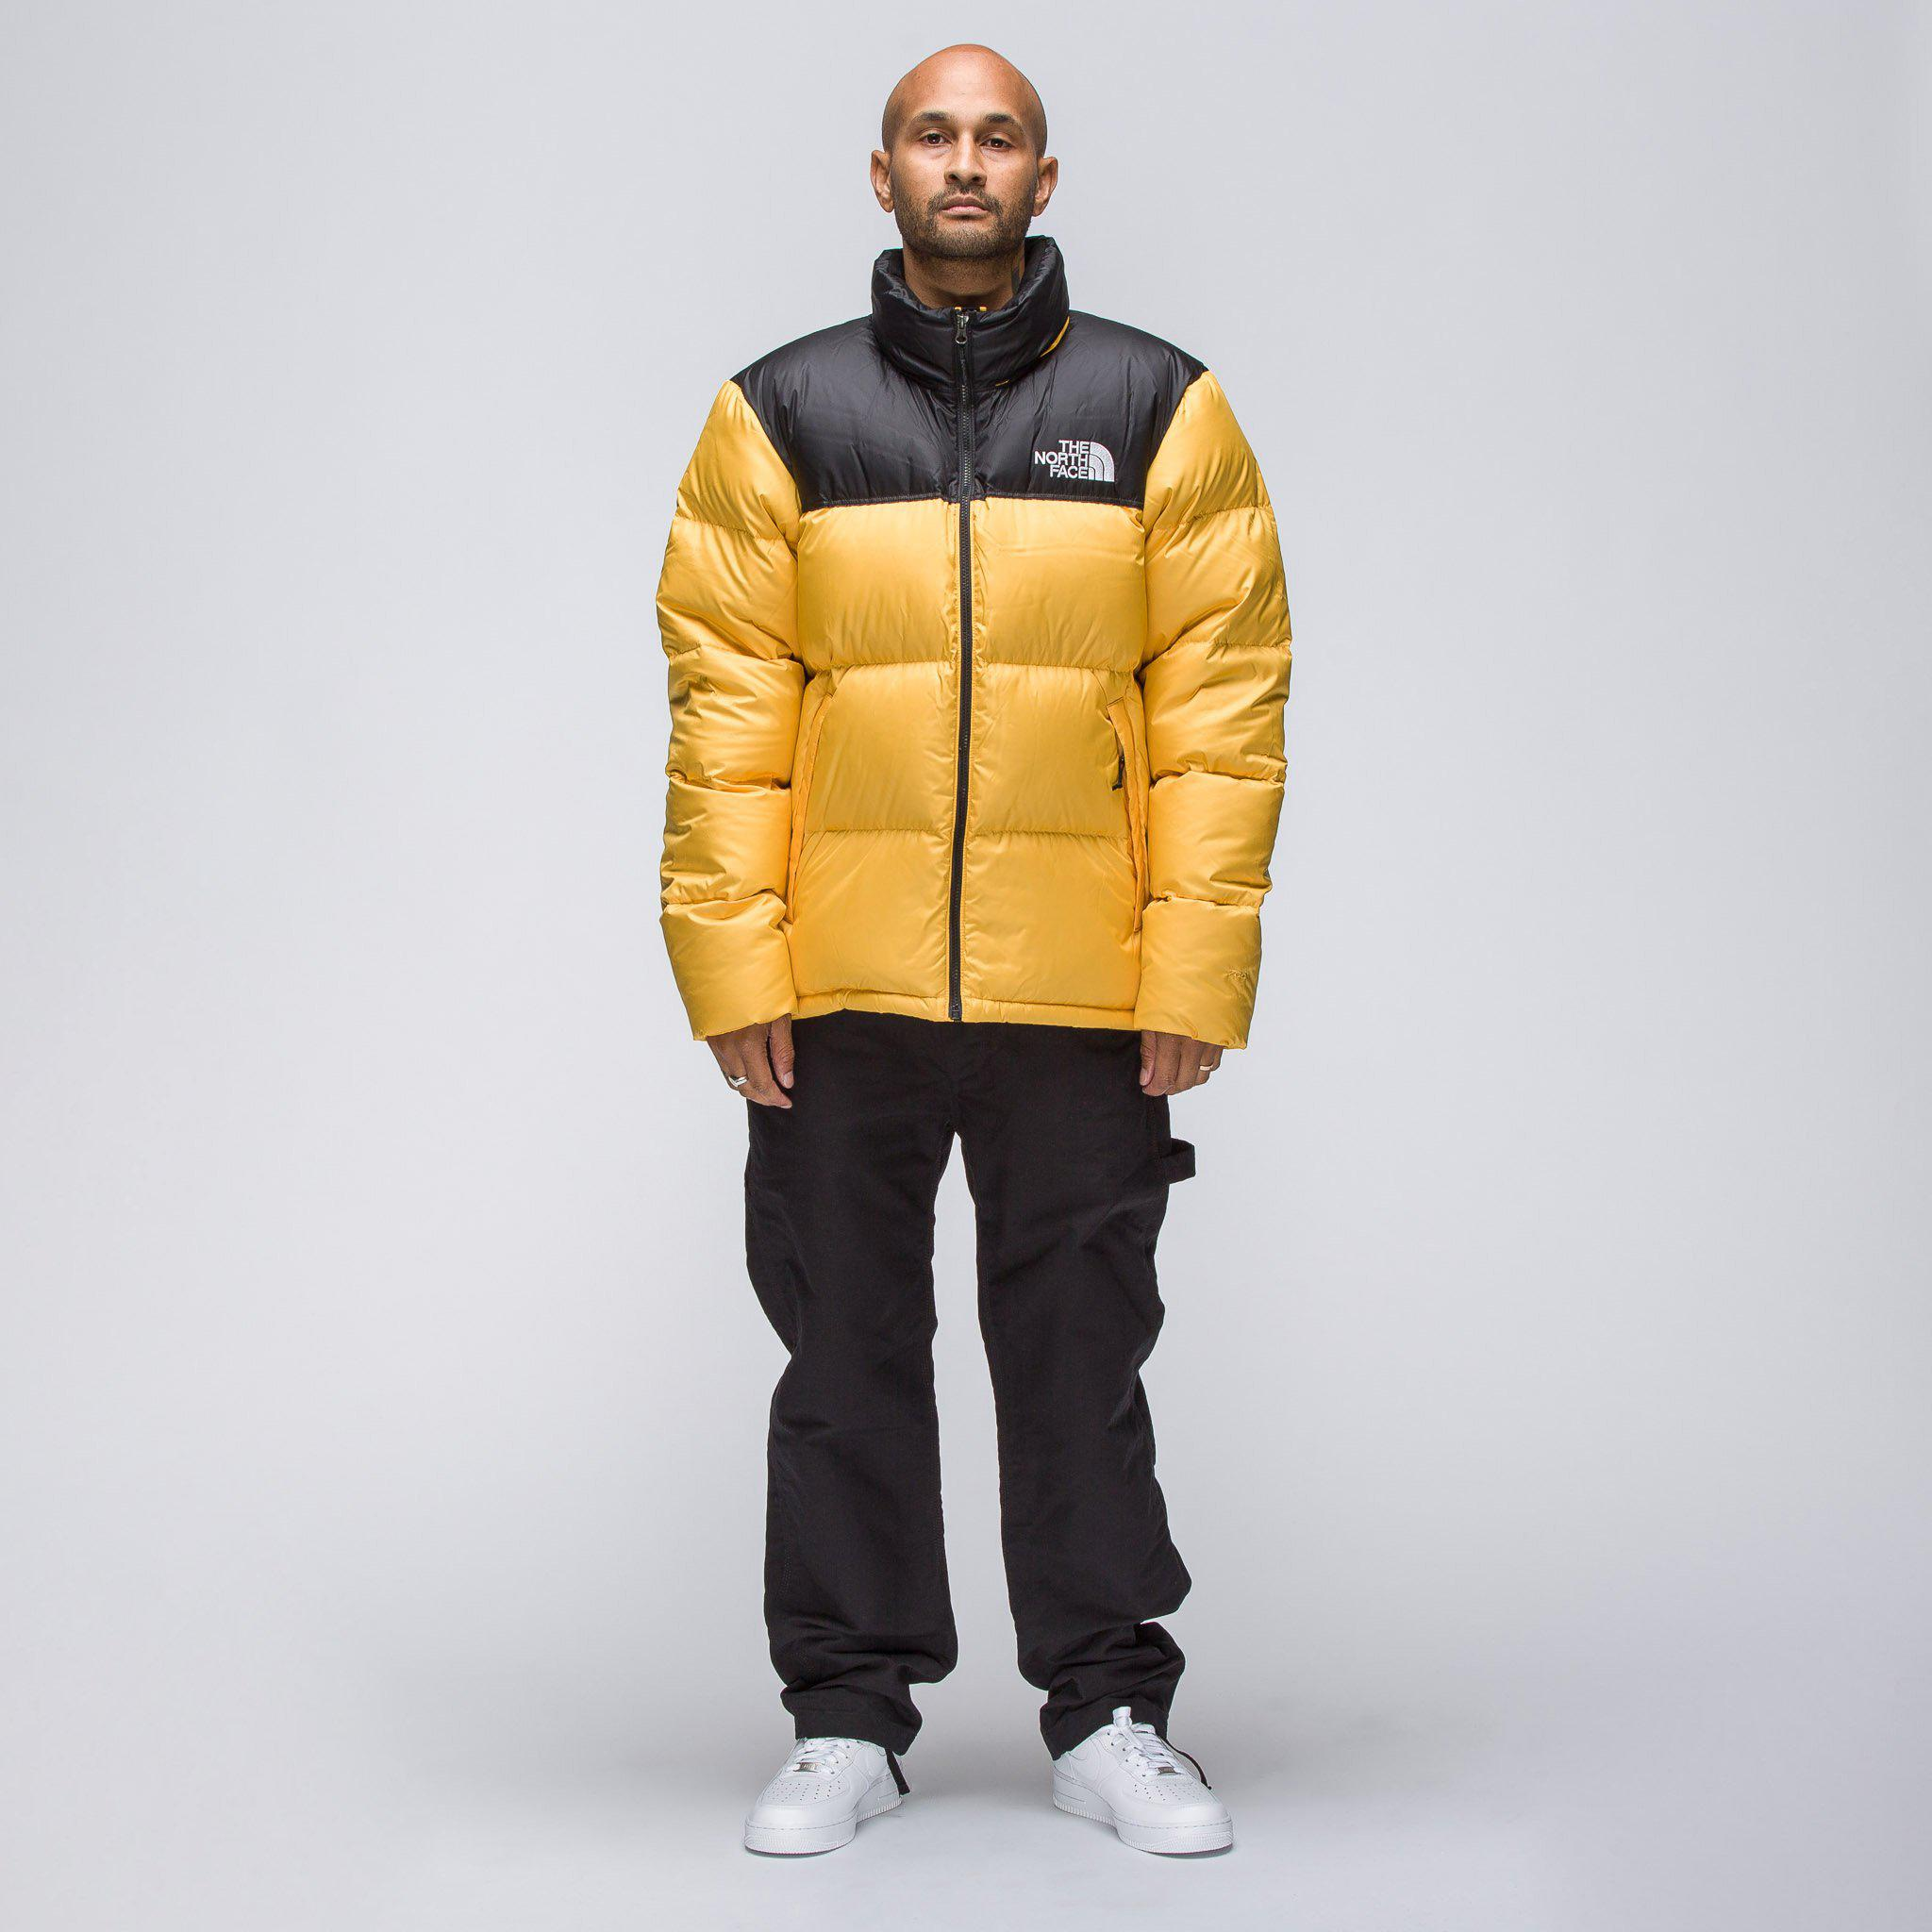 253a0d358b Lyst - The North Face Novelty Nuptse Jacket In Yellow in Yellow for Men